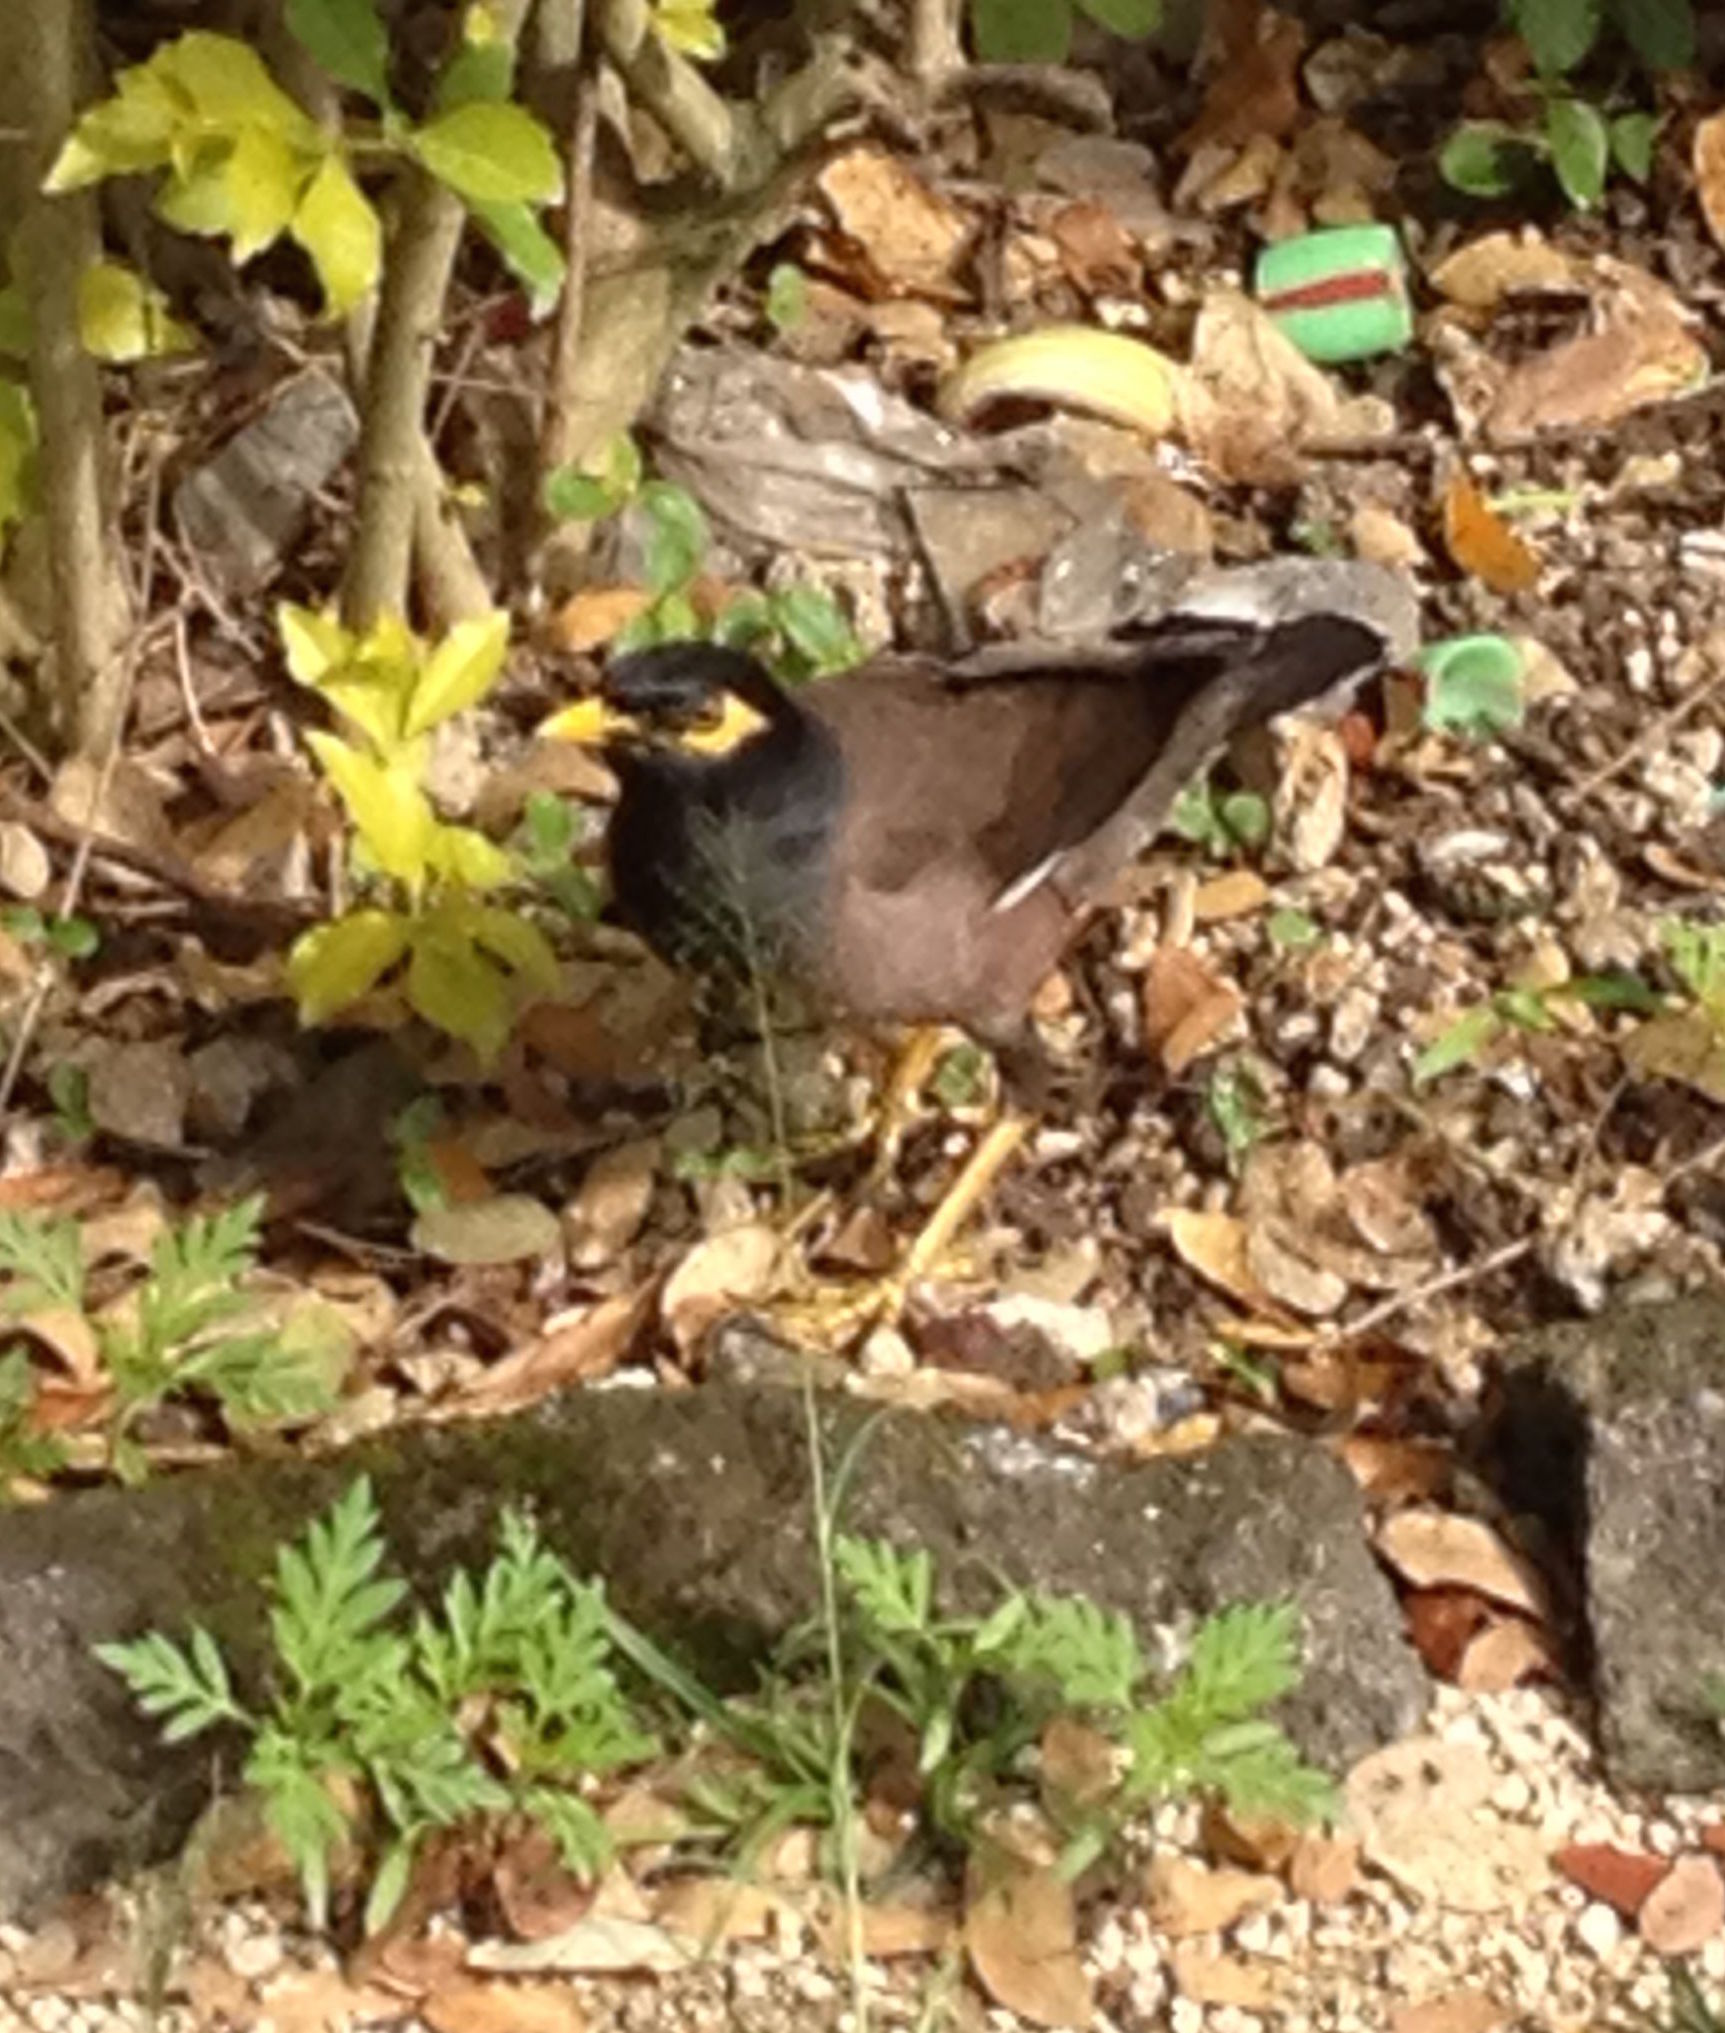 87-we-saw-this-friendly-wild-bird-almost-every-day-near-joyful-in-vanuatu-it-is-a-type-of-myna-but-might-be-the-invasive-species-type